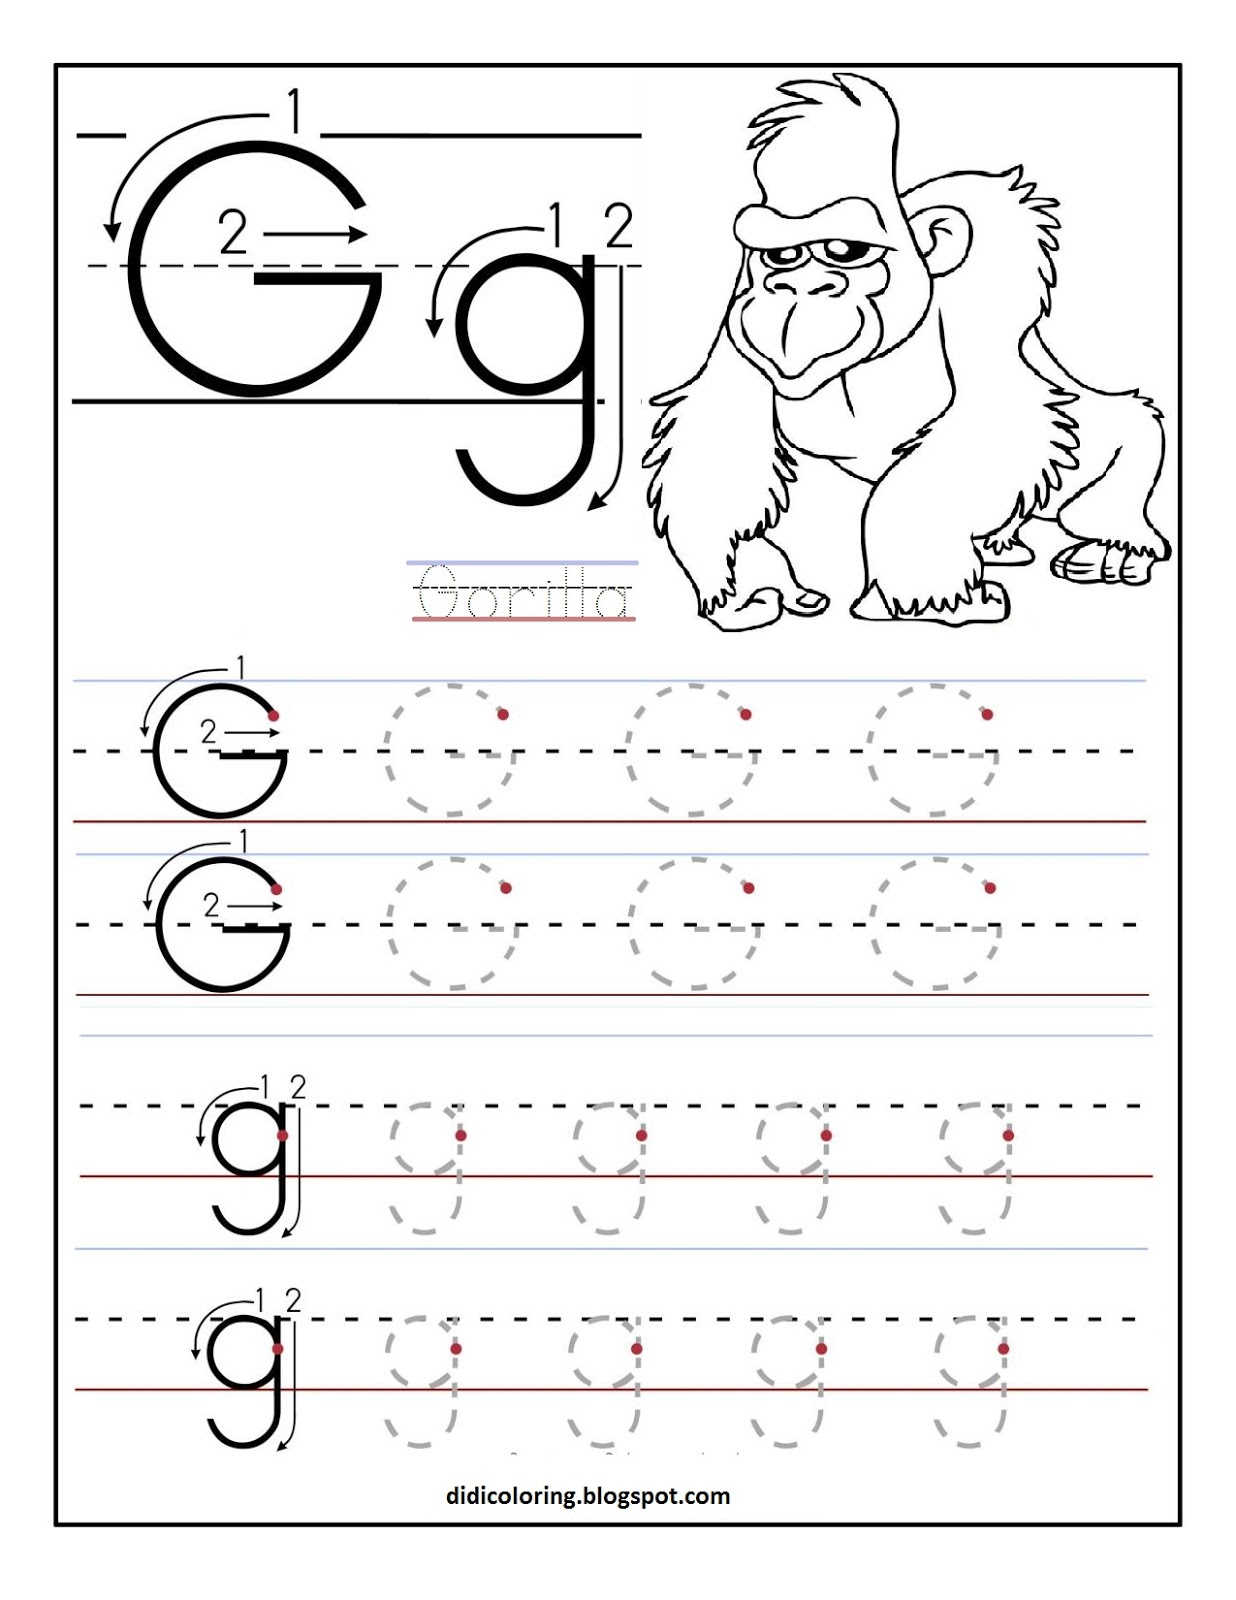 Free Printable Worksheet Letter G For Your Child To Learn And Write